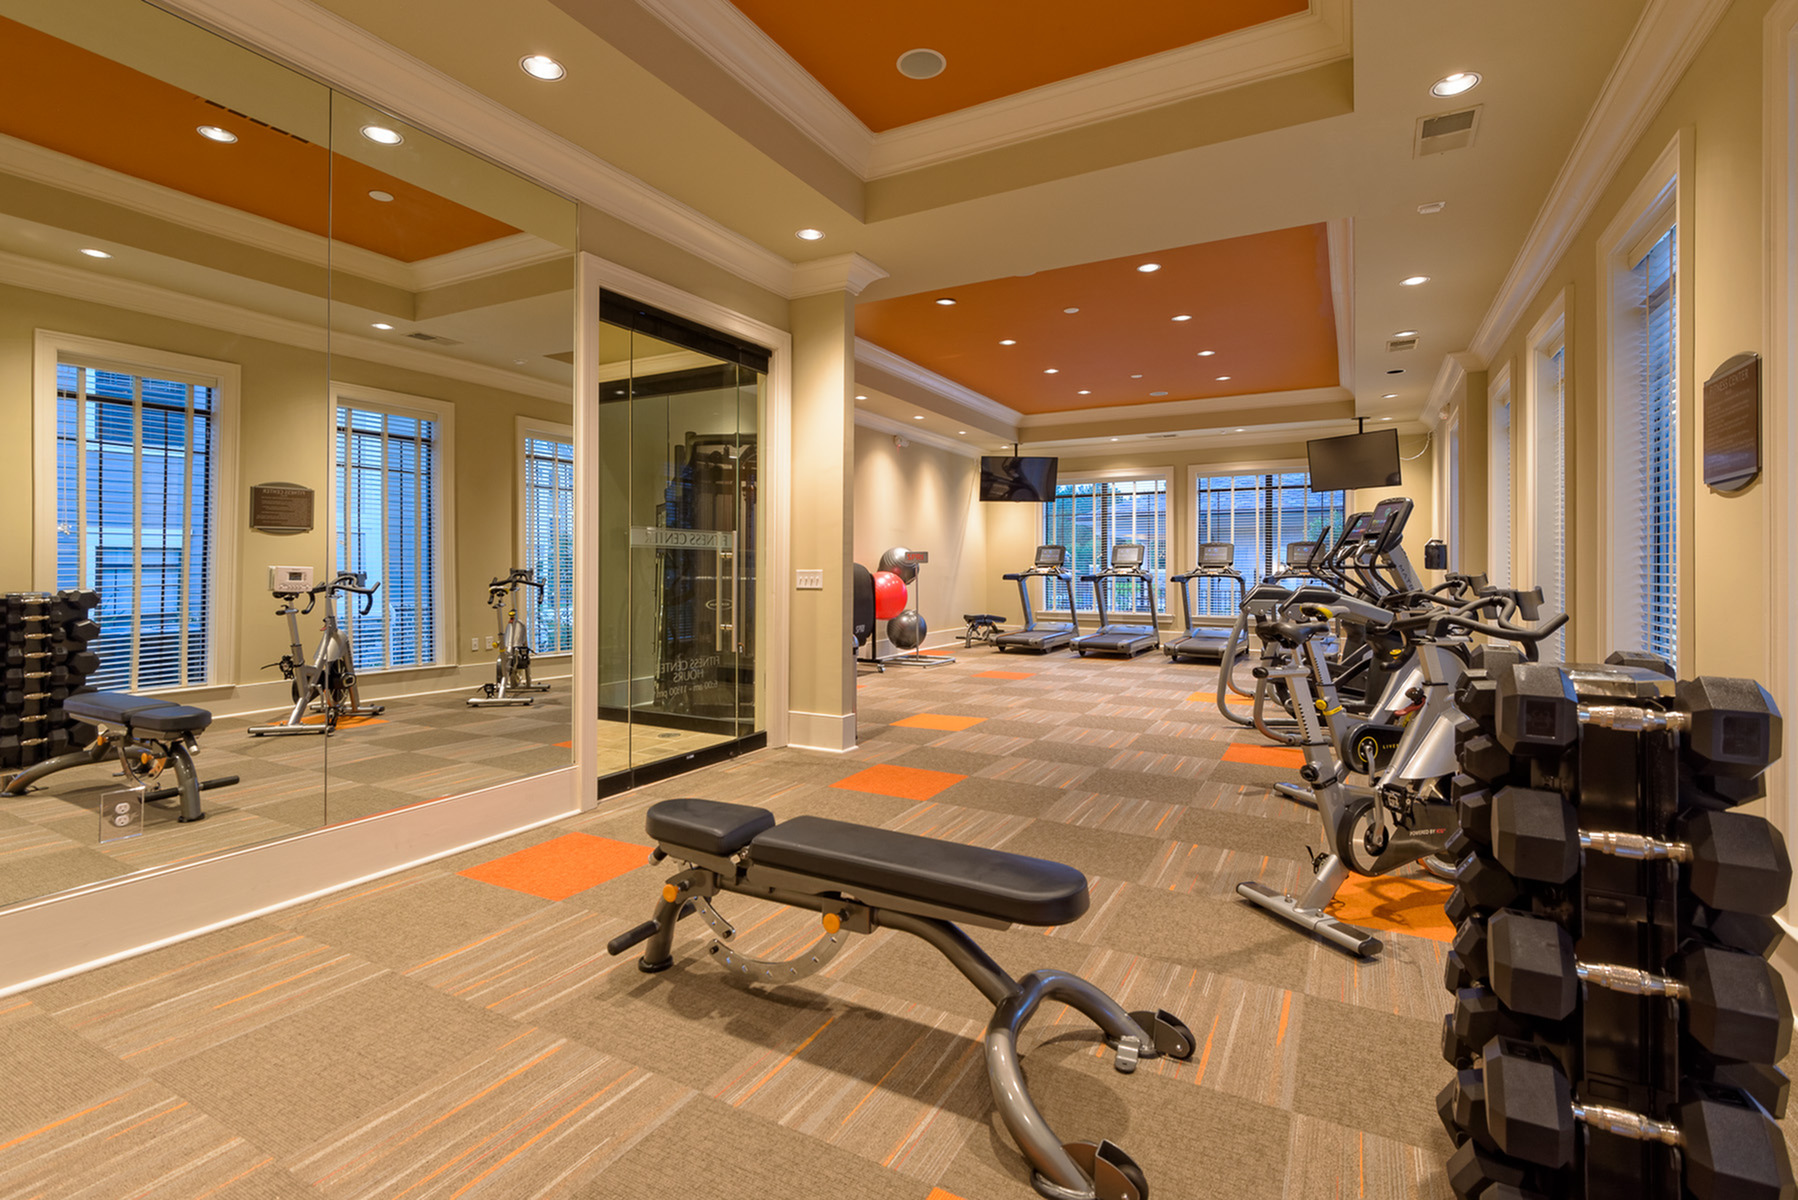 View of Fitness Center, Showing Free Weights, Bench, and Cardio Machines at Heights at Meridian Apartments